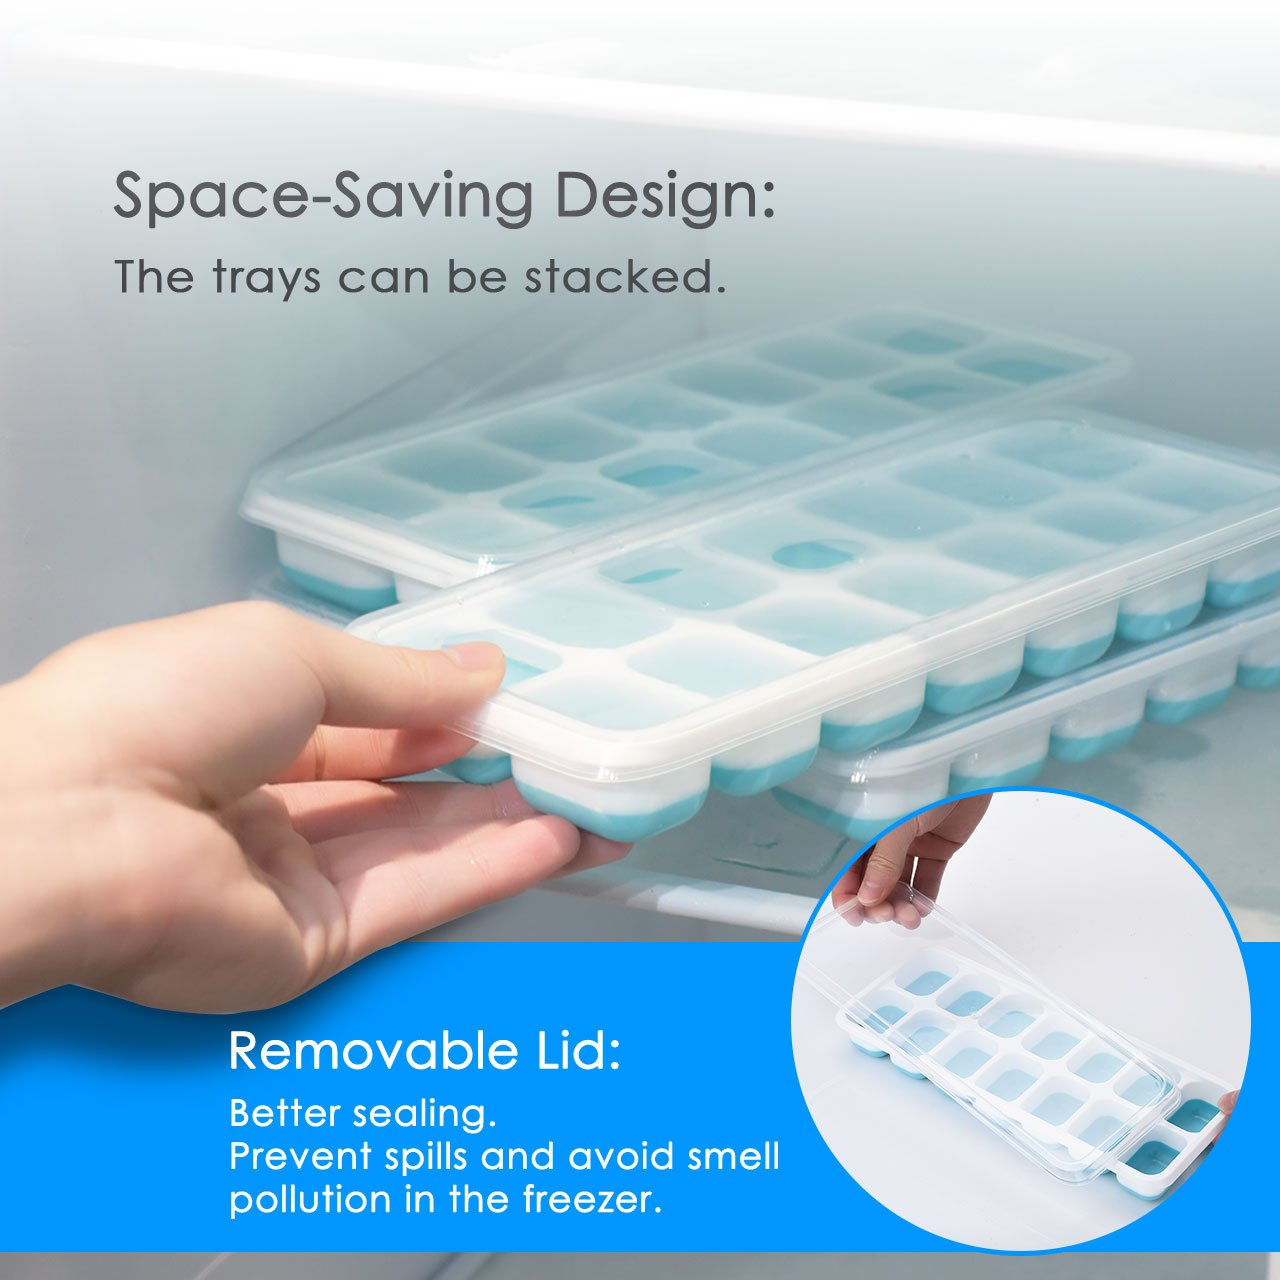 OMorc Ice Cube Trays 4 Pack, Easy-Release Silicone and Flexible 14-Ice Trays with Spill-Resistant Removable Lid, LFGB Certified & BPA Free, Stackable by OMORC (Image #5)